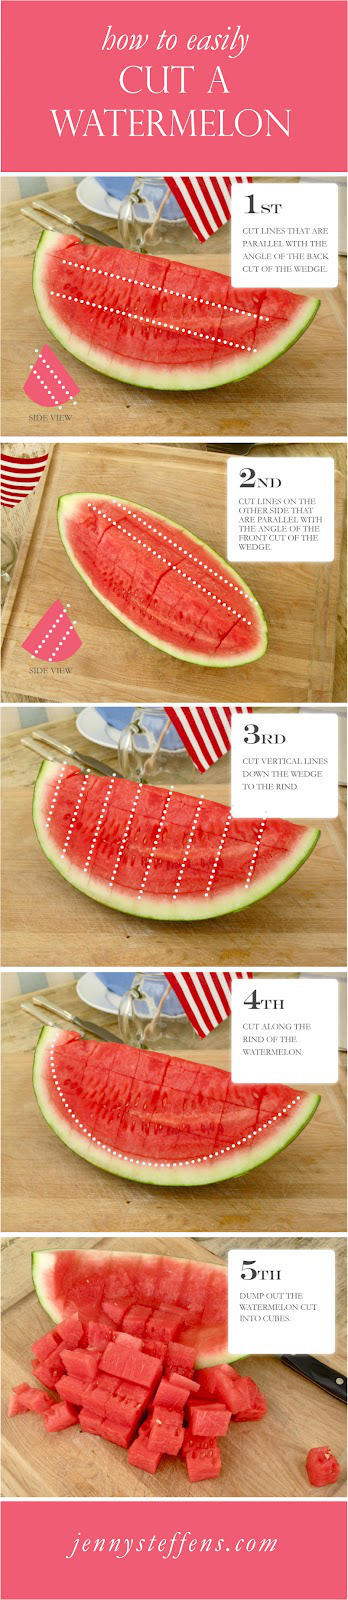 How-to-cut-a-watermelonm-2